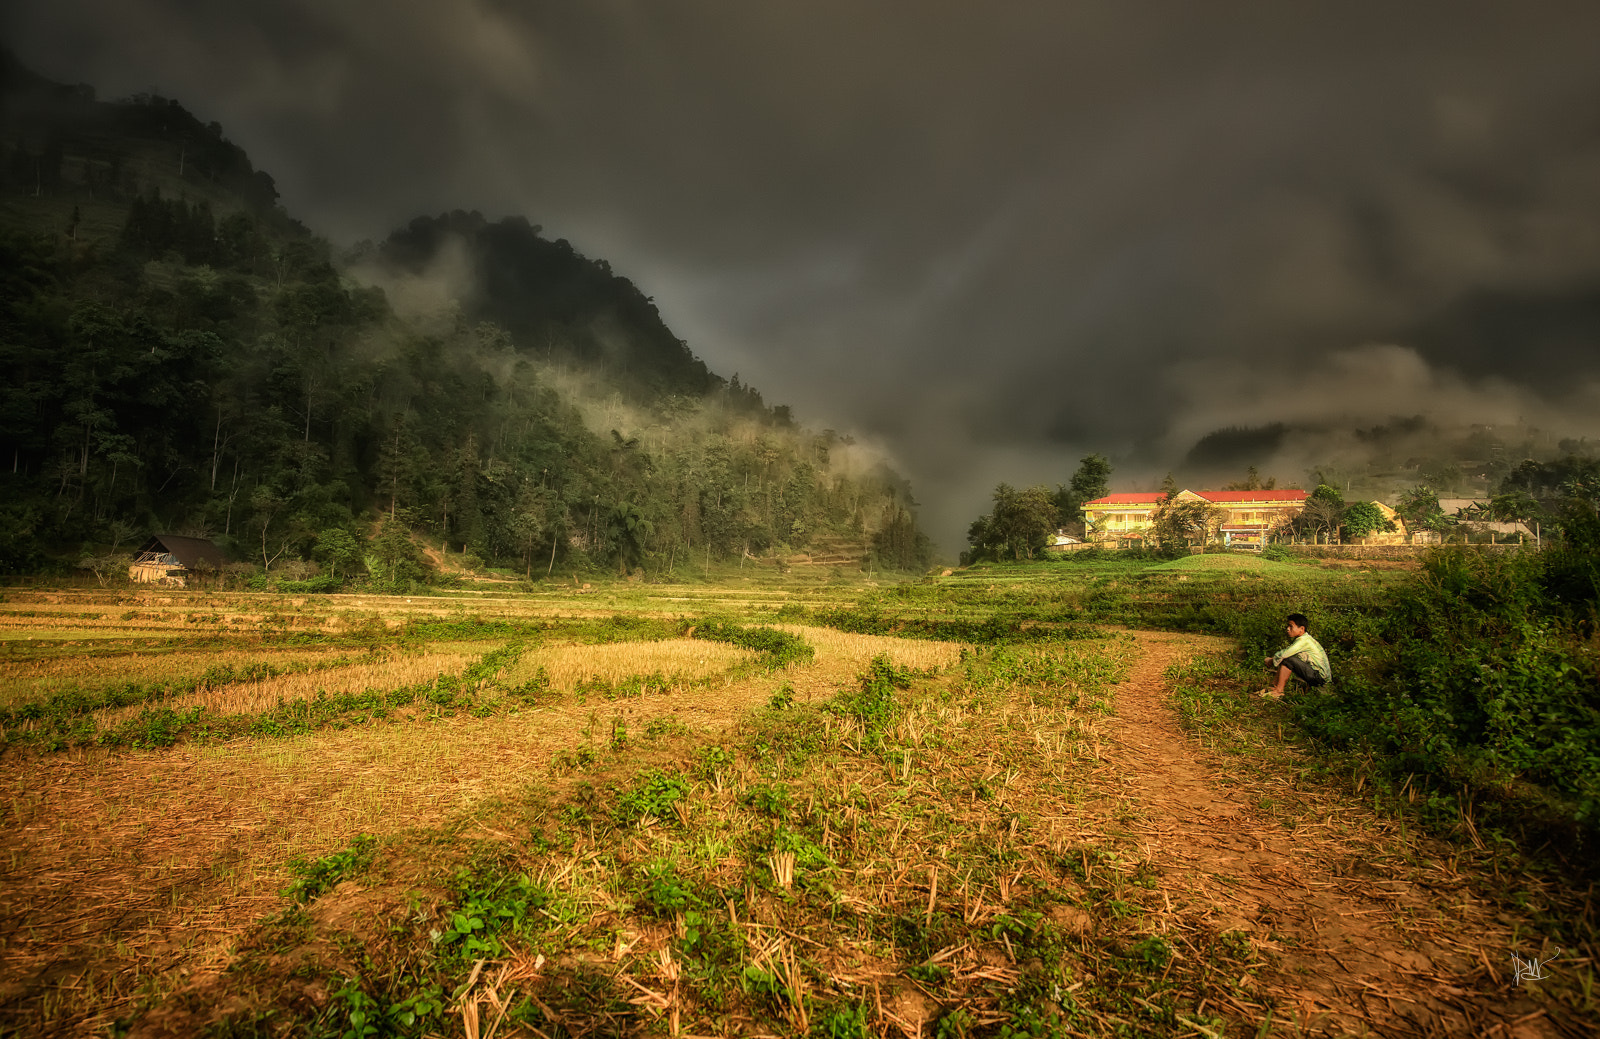 Photograph Storm in Sapa by Dean Mullin on 500px